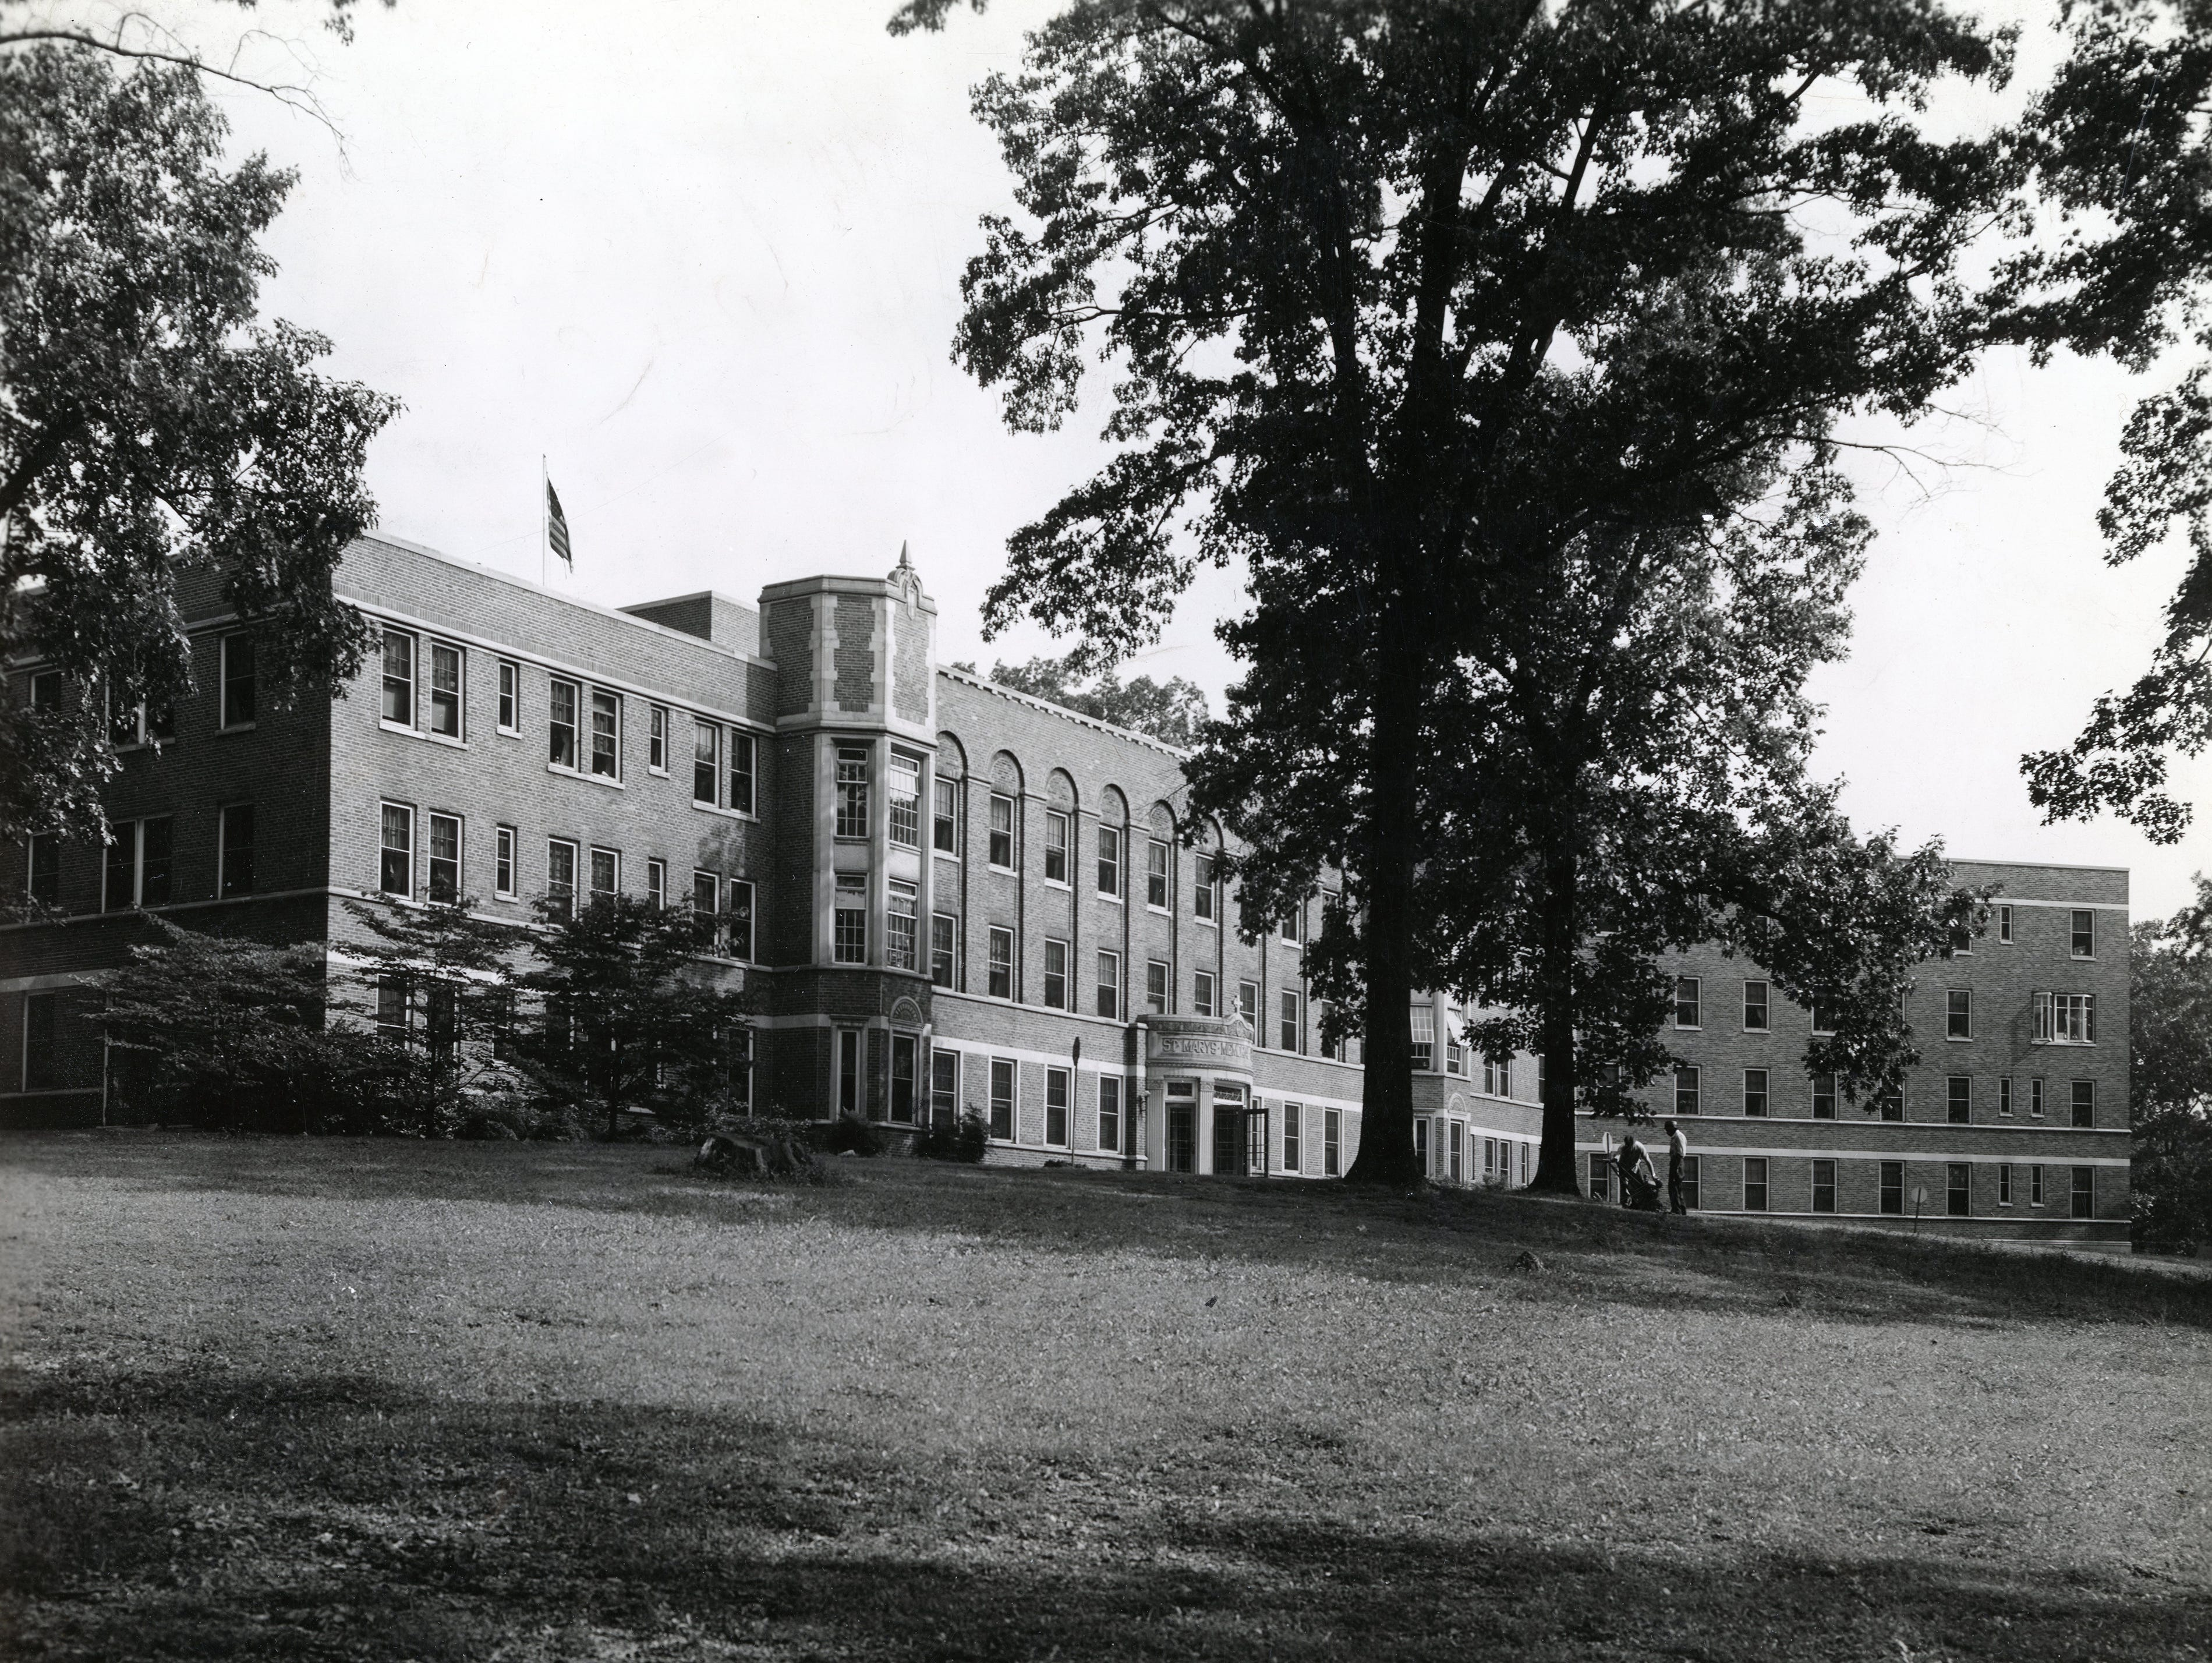 The east wing of the main building of St. Mary's Hospital in February 1950.